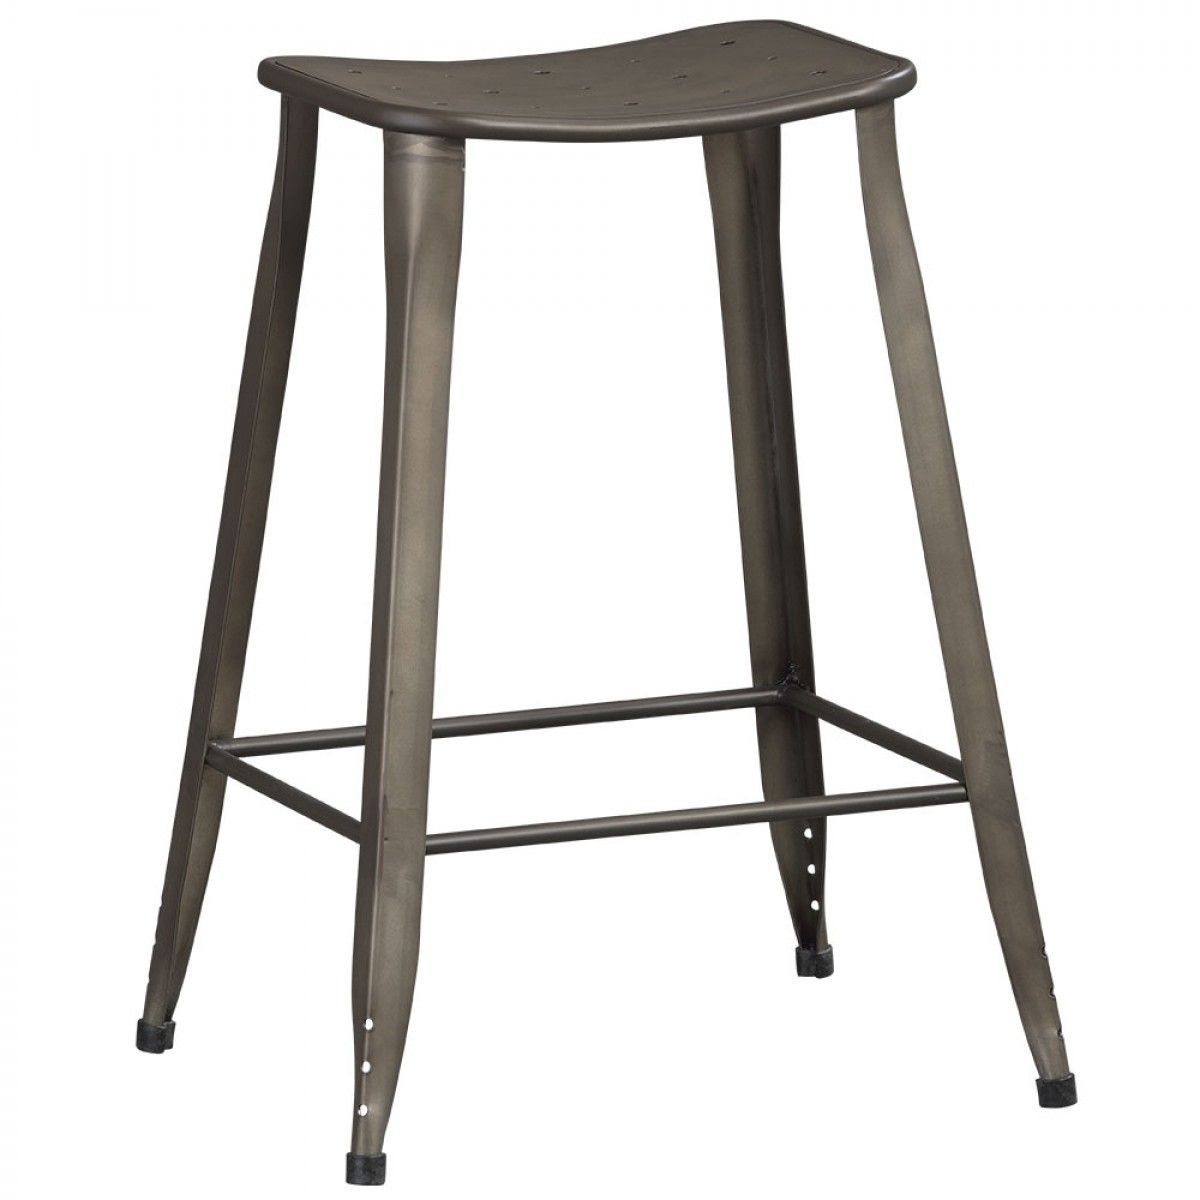 Tailor Stool Copper Finish - Chairs & Barstools - Dining | Kitchen ...